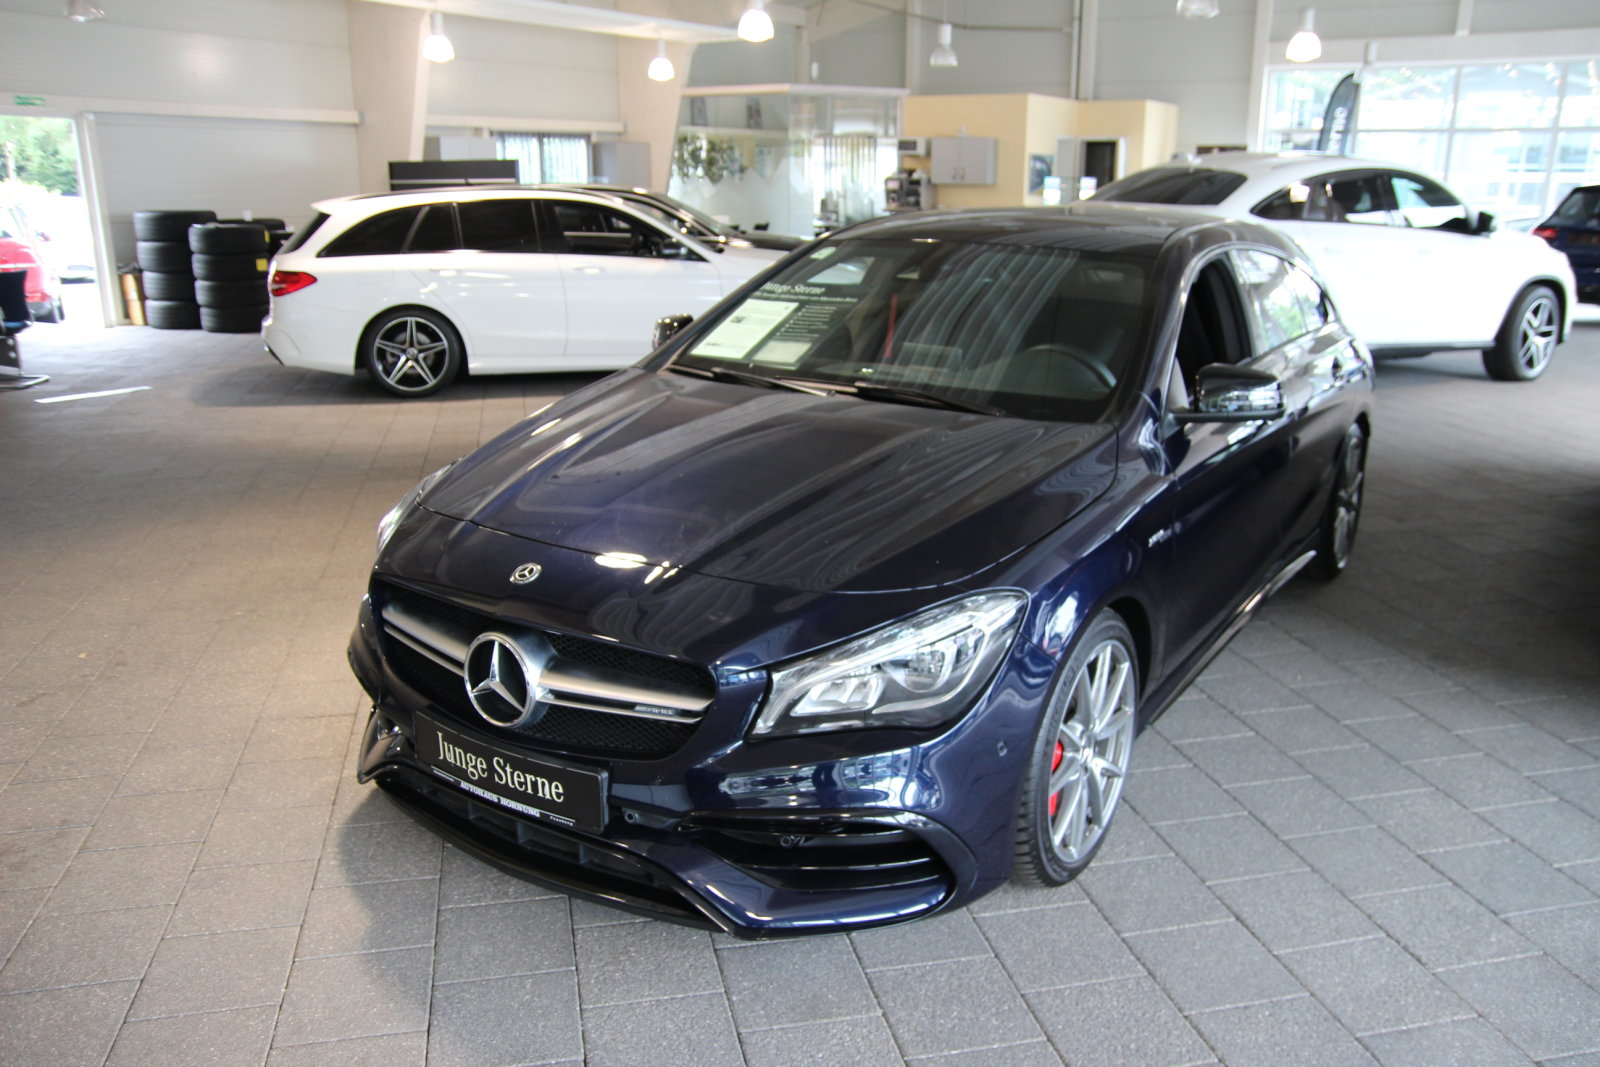 Mercedes-Benz CLA 45 4M SB/Navi/Night/Pano/Sound/LED AMG Line, Jahr 2018, Benzin